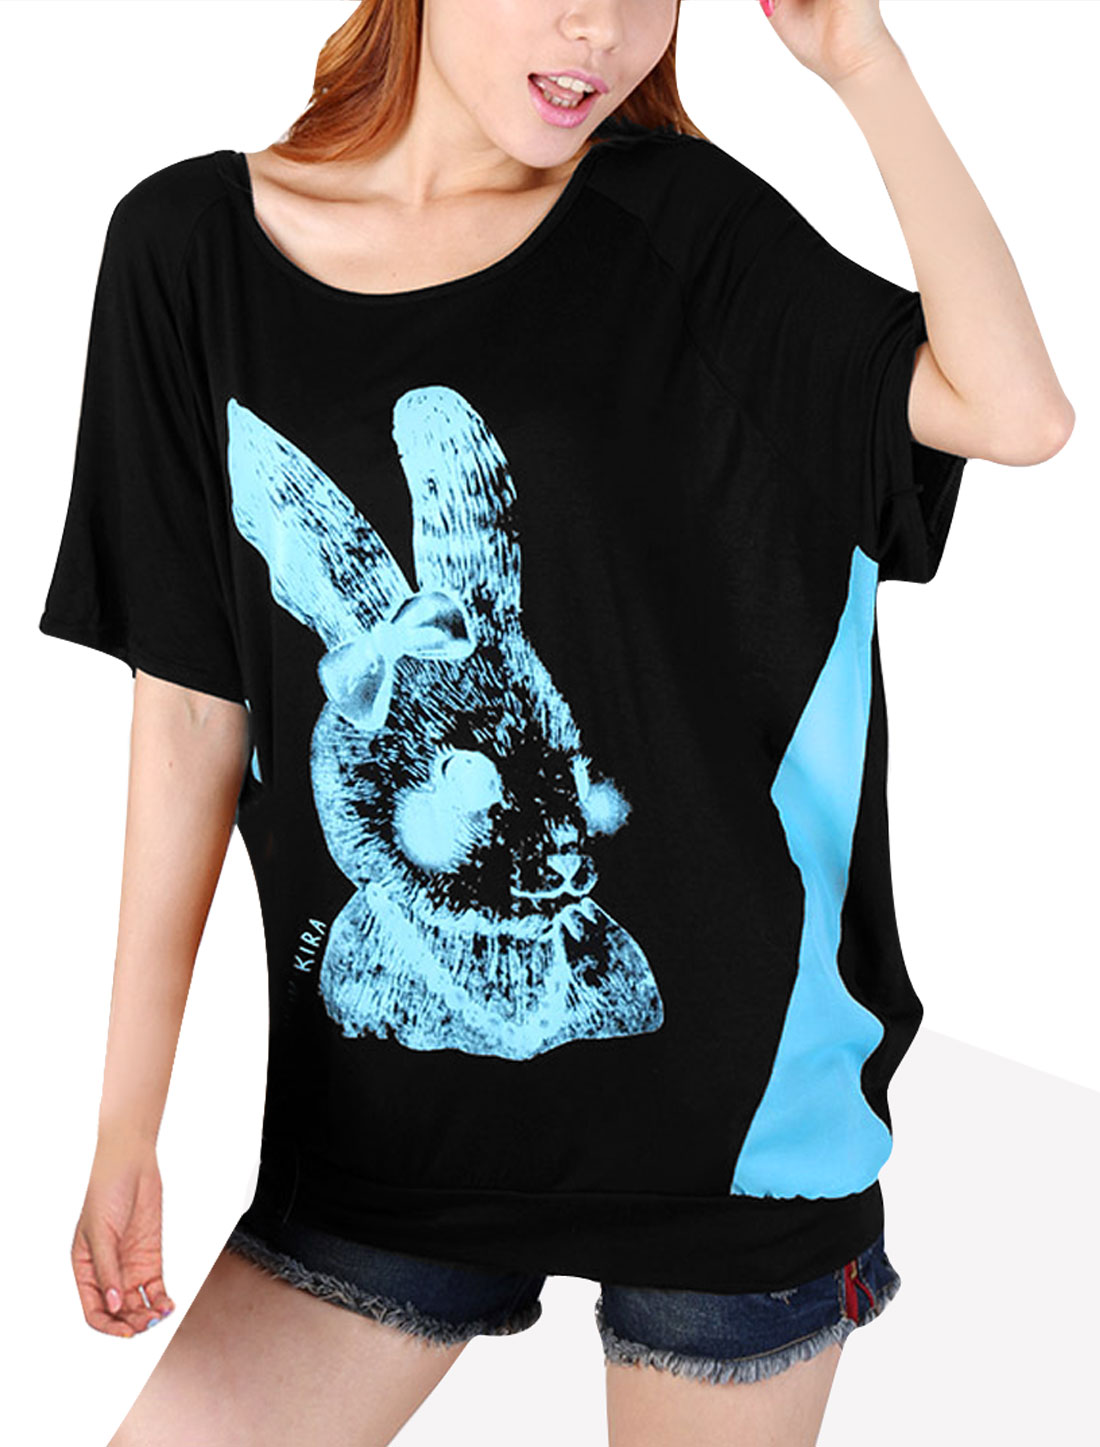 Ladies Semi-Sheer Back Design Rabbit Pattern Sky Blue Black Top Shirt M